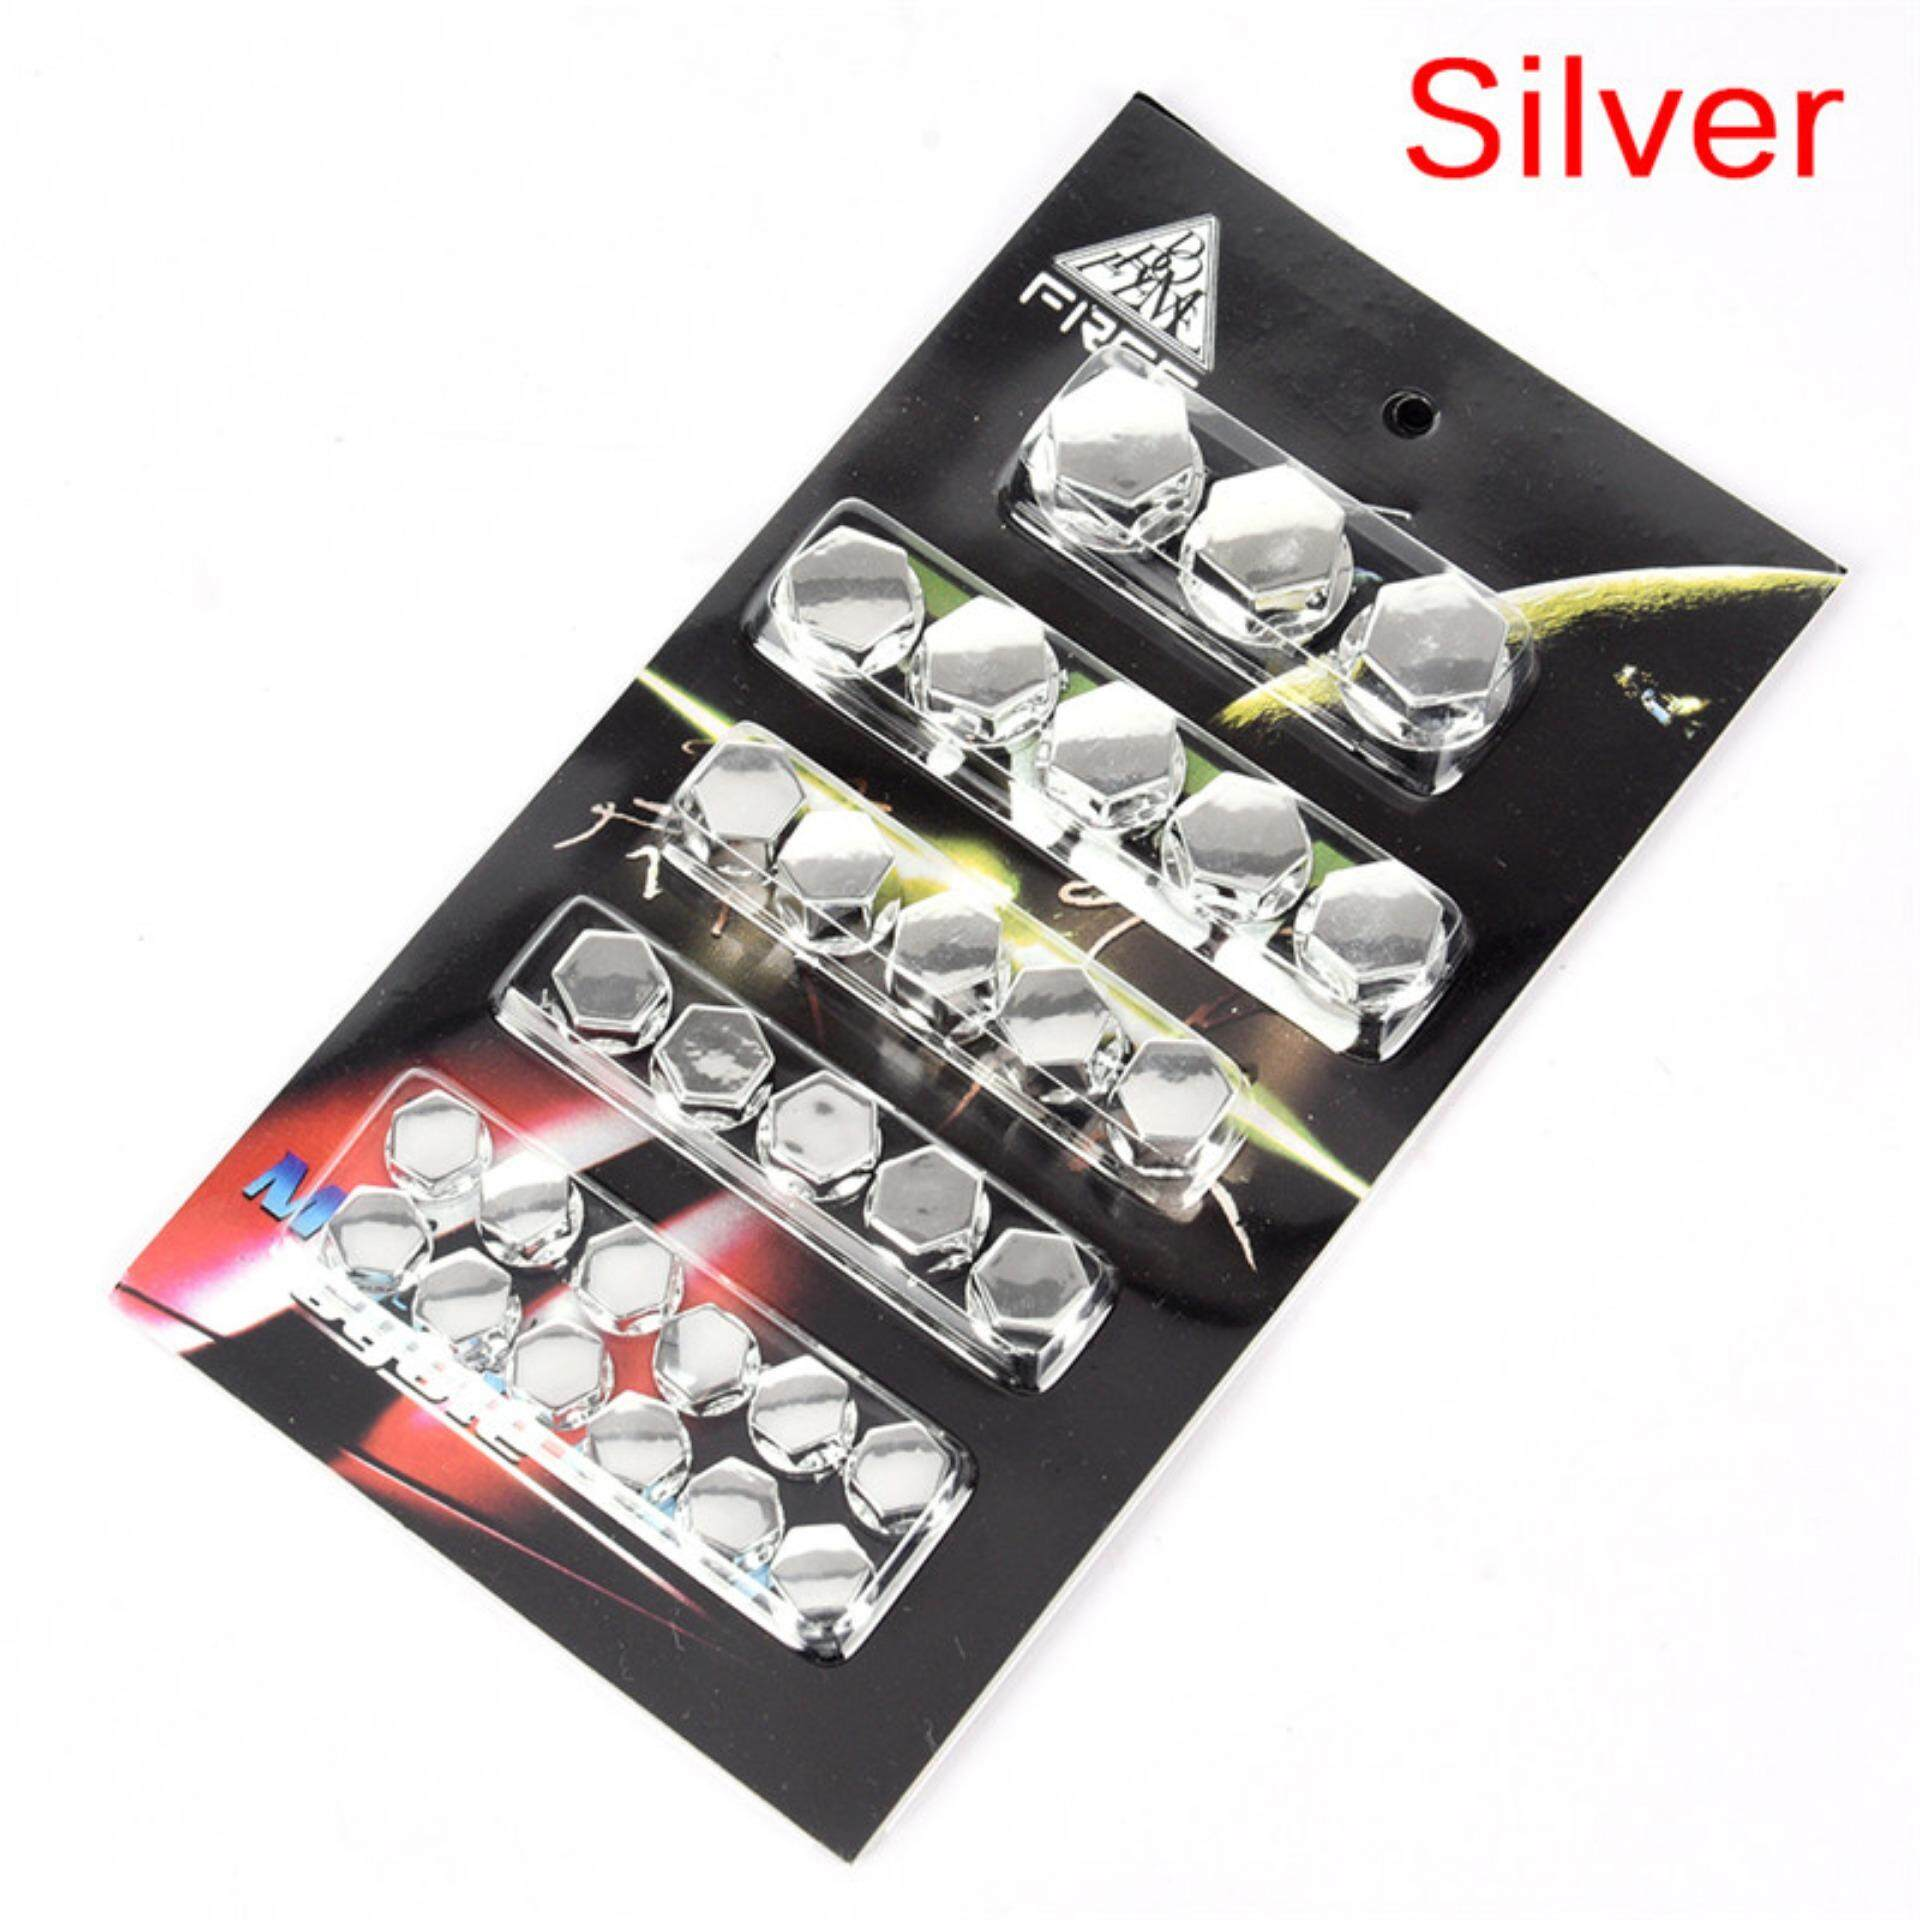 Motorcycle Screw Nut Bolt Cap Cover Decoration Centro Motorbike Ornament Fashion Silver By Aokago.